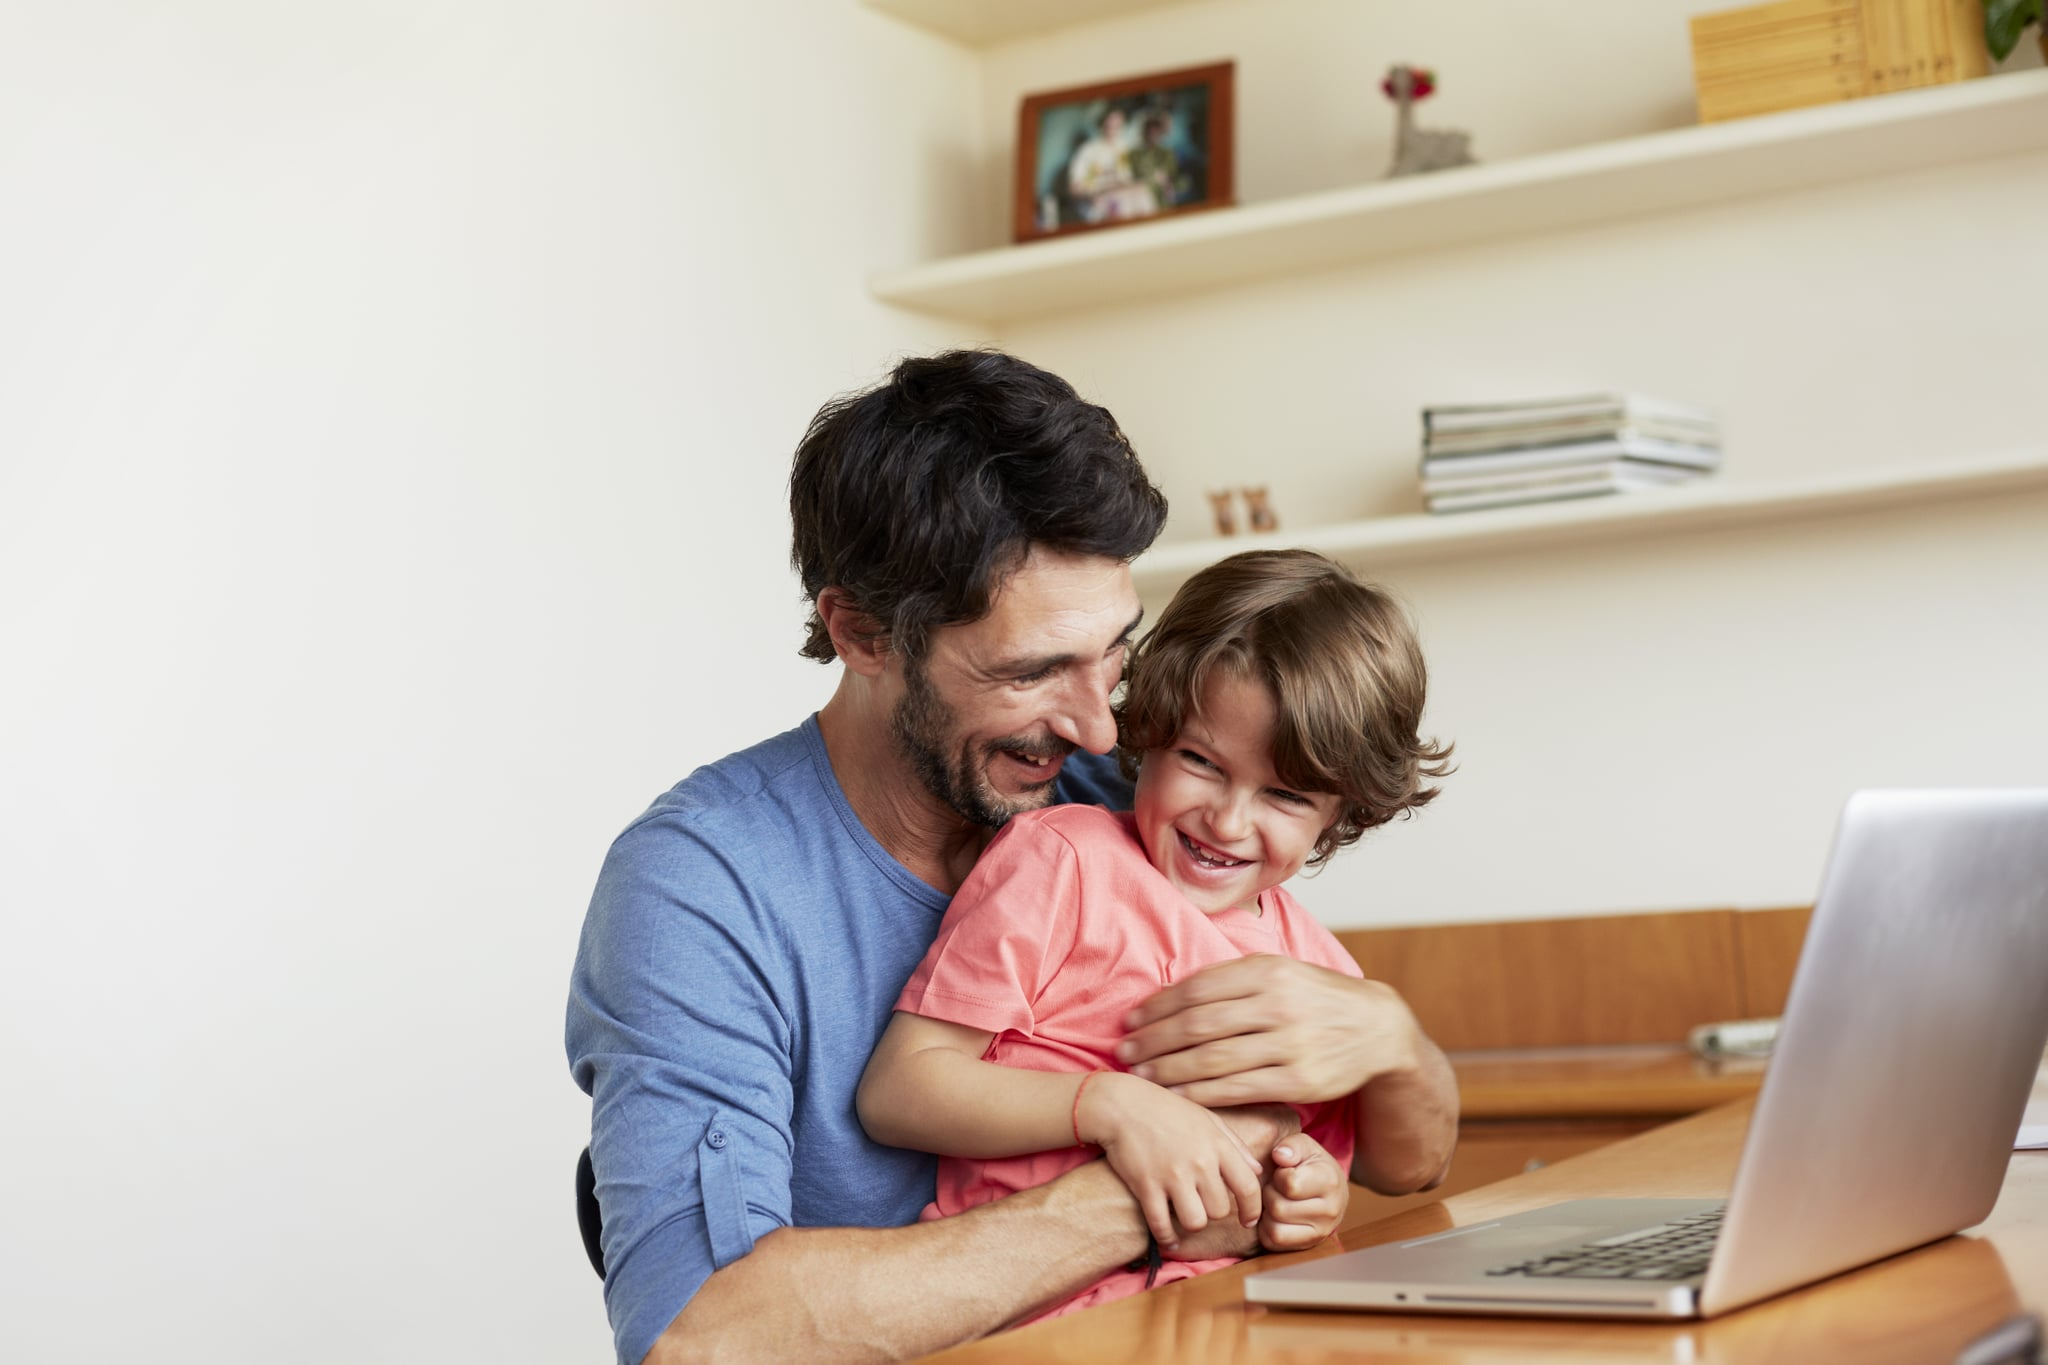 Happy father tickling son at laptop table in house